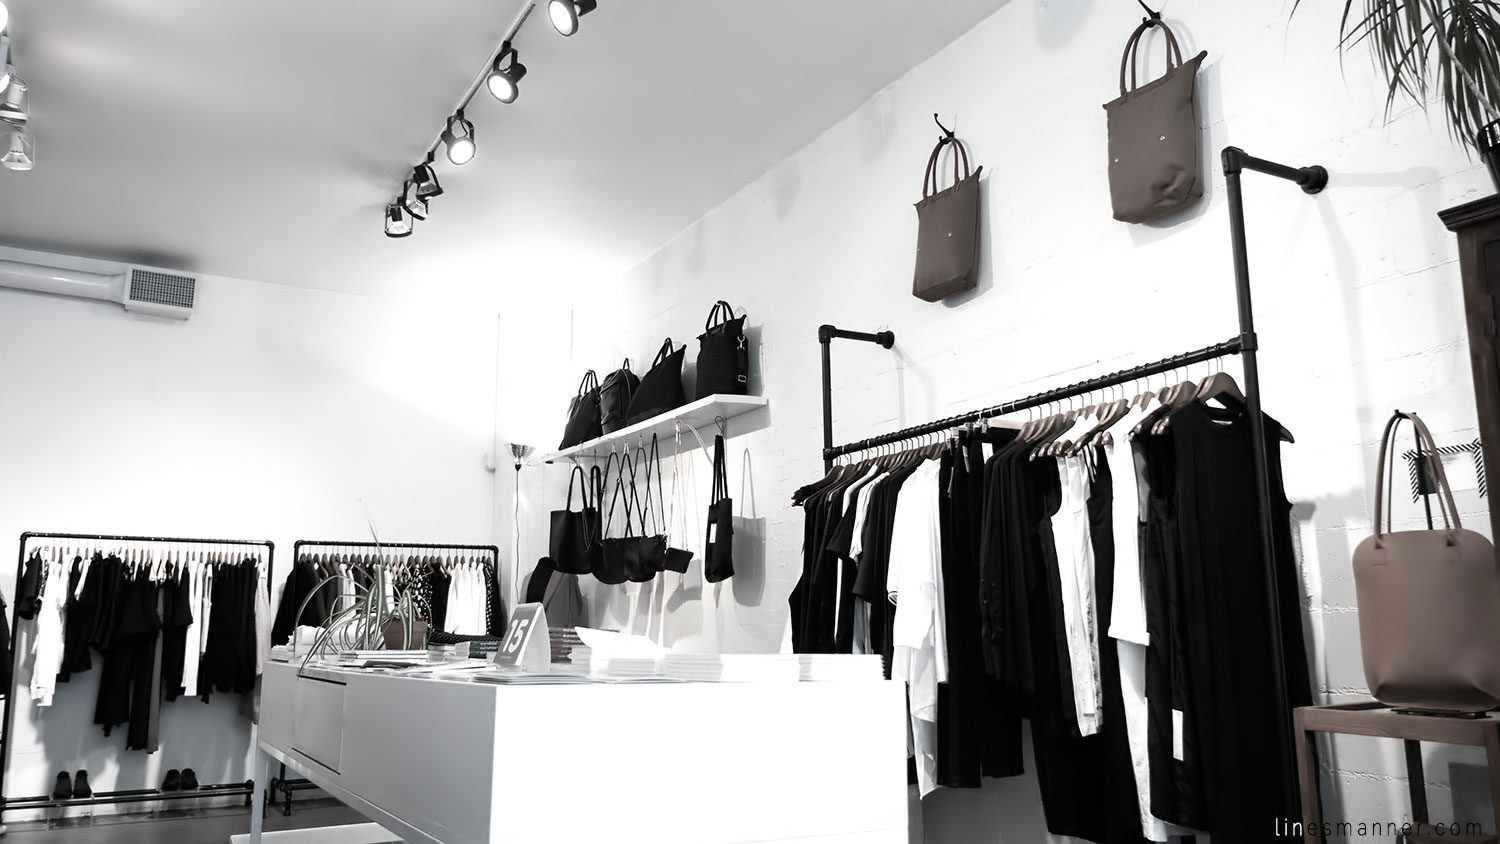 Lines-Manner-Concept-Boutique-Store-Minimal-Trend-Essentials-Basics-Staples-Ibiki-Montreal-Canada-Art-Contemporary-Artistic-Details-Monochrome-Black_and_White-1